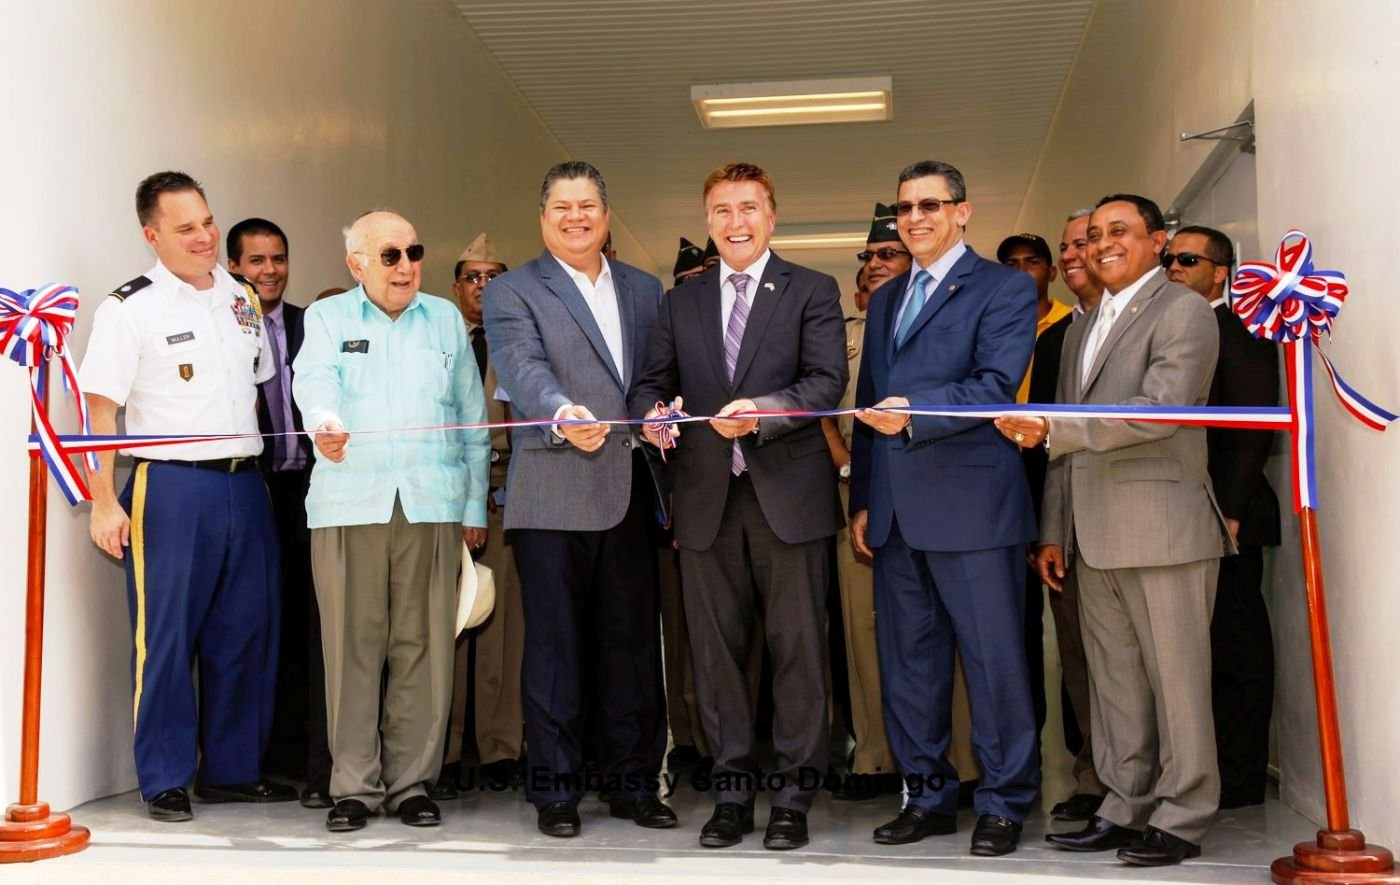 Dominican Republic opens new Regional Canine Training Center